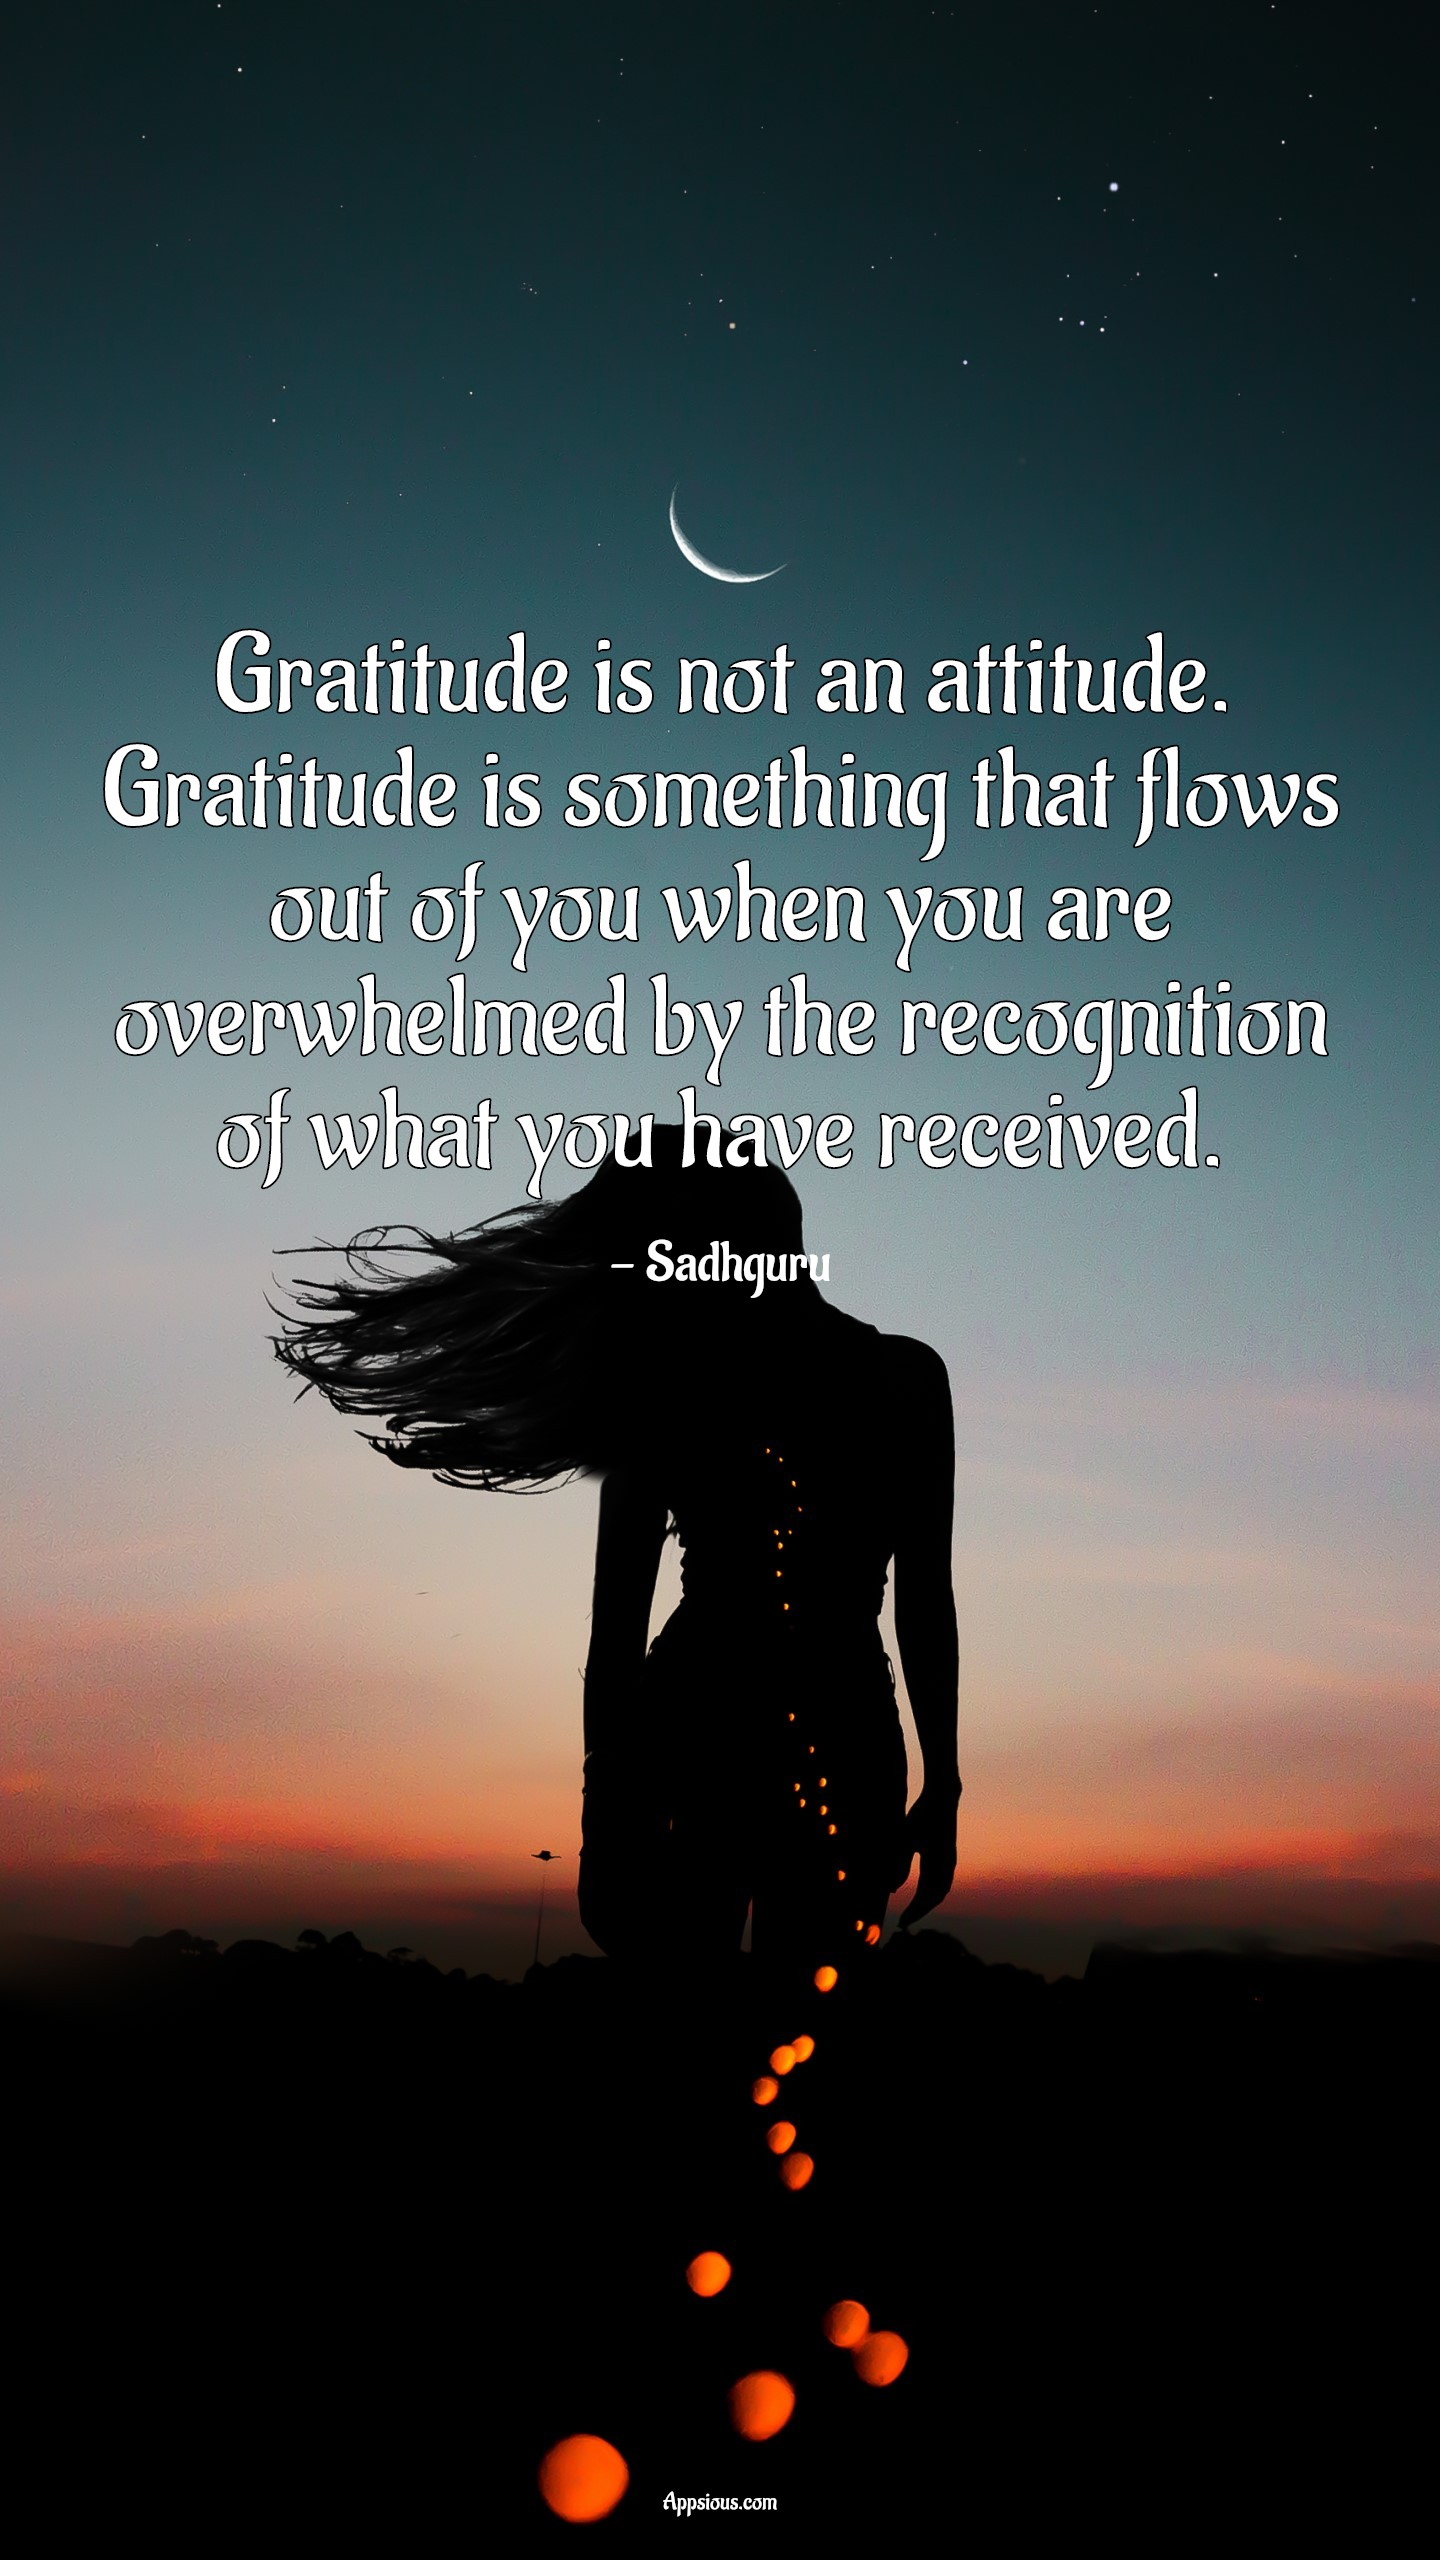 Gratitude is not an attitude. Gratitude is something that flows out of you when you are overwhelmed by the recognition of what you have received.